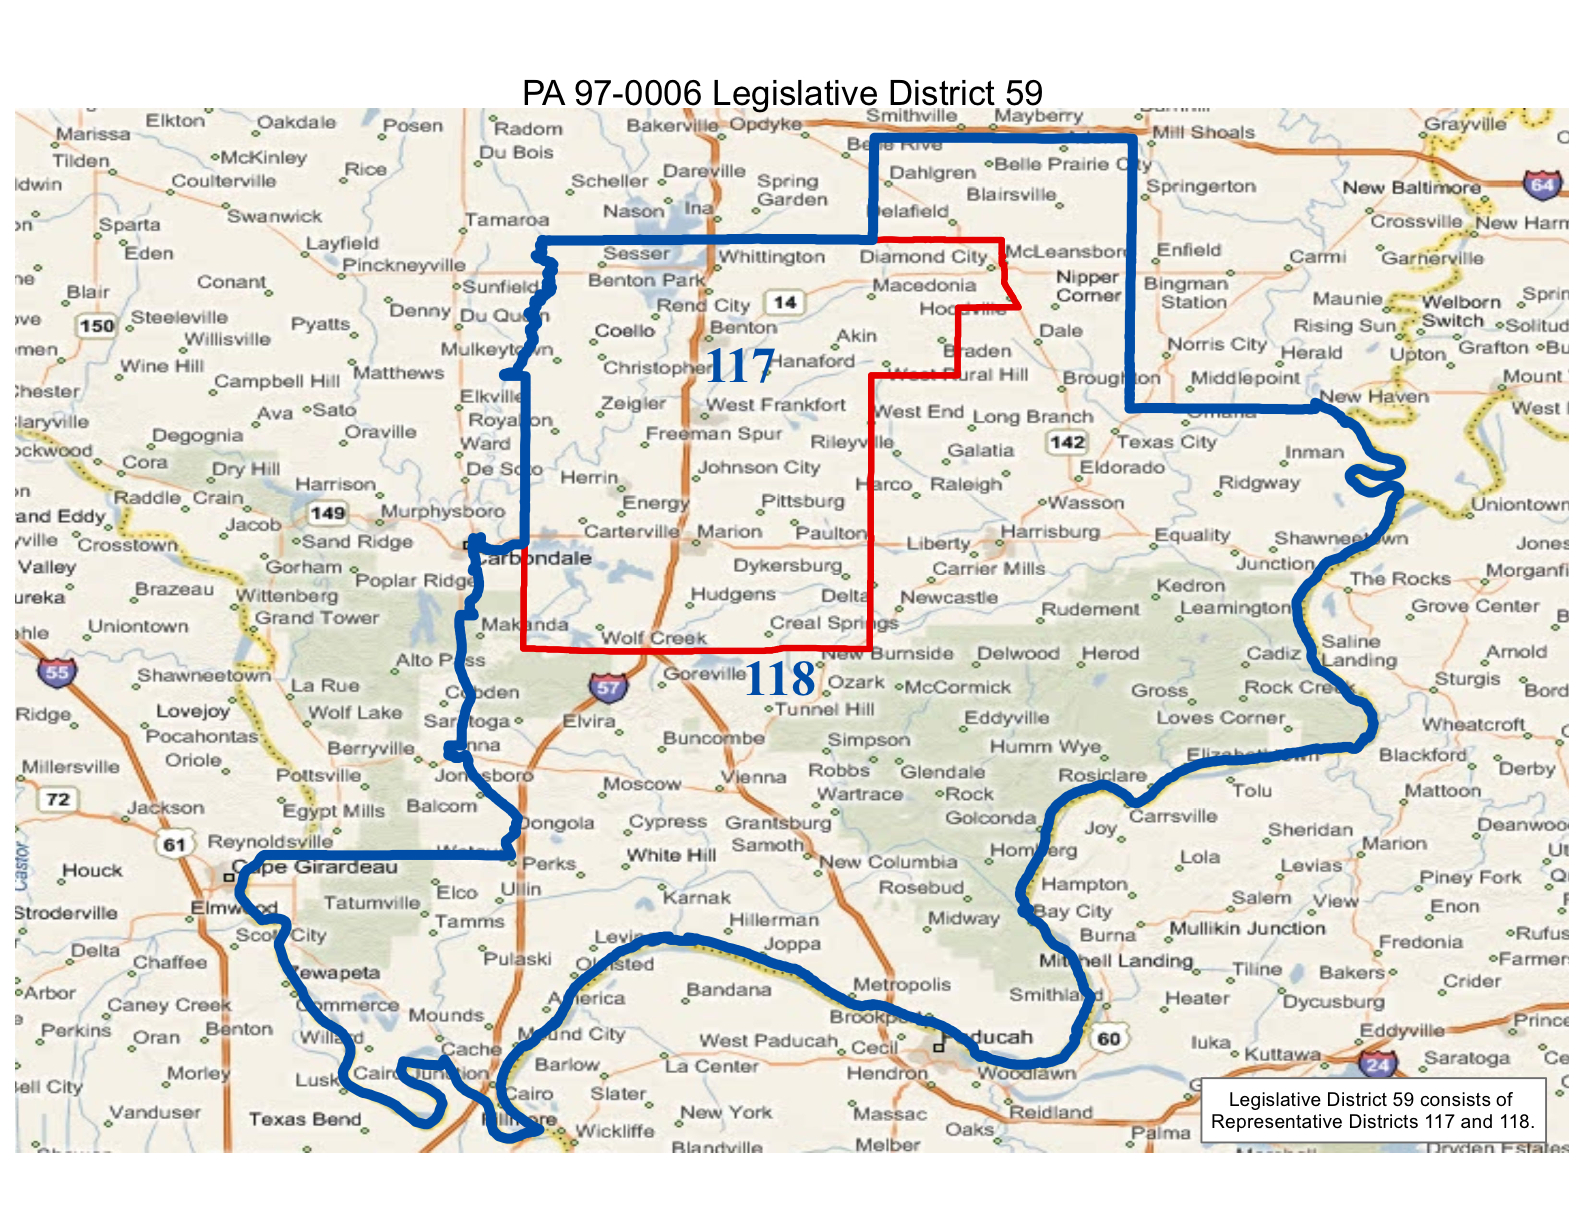 Will County Politics: Realigned Illinois State Legislative and State on illinois house districts, savanna illinois city map, illinois state senators, illinois congressional districts by town, ks representative district map, illinois state legislative districts, illinois 6th congressional district, u.s. senate district map, illinois department of corrections facility map, illinois 1st congressional district, illinois congressional races 2012, illinois congressional districts 2013, illinois 16th congressional district, illinois state police district map, illinois house of representatives, illinois district 6, illinois 3rd congressional district, illinois state senate districts, illinois district 18, state of illinois district map,